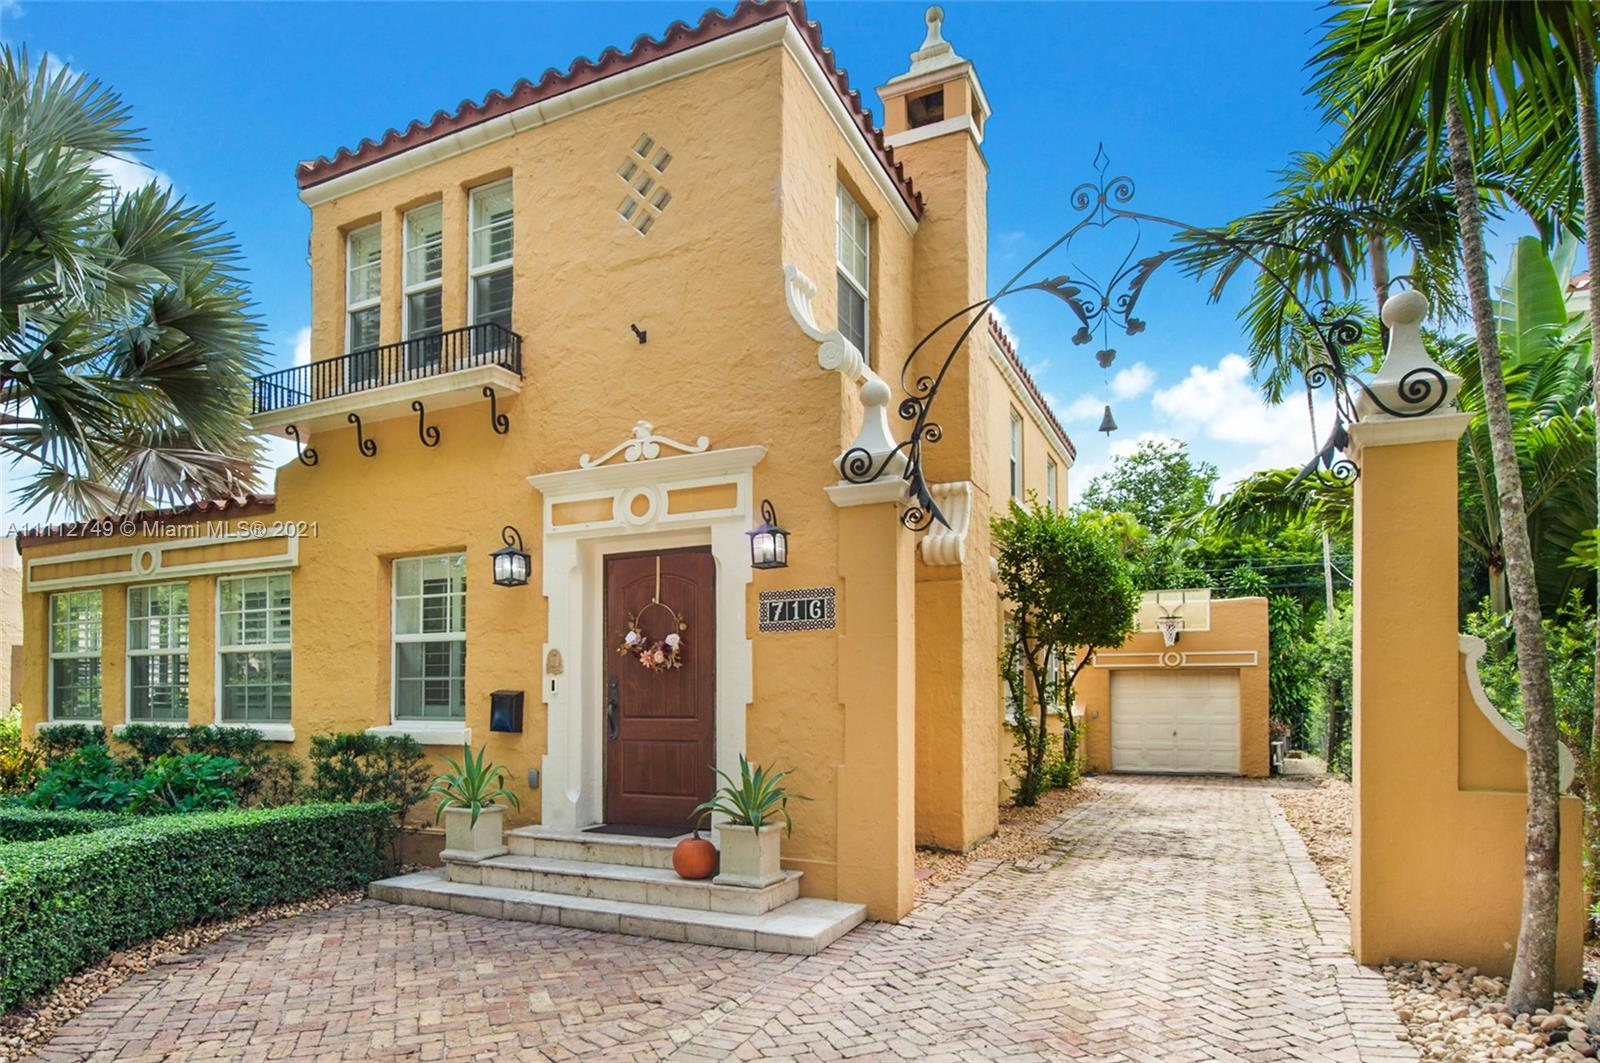 Single Family Home,For Sale,716 Navarre Ave, Coral Gables, Florida 33134,Brickell,realty,broker,condos near me